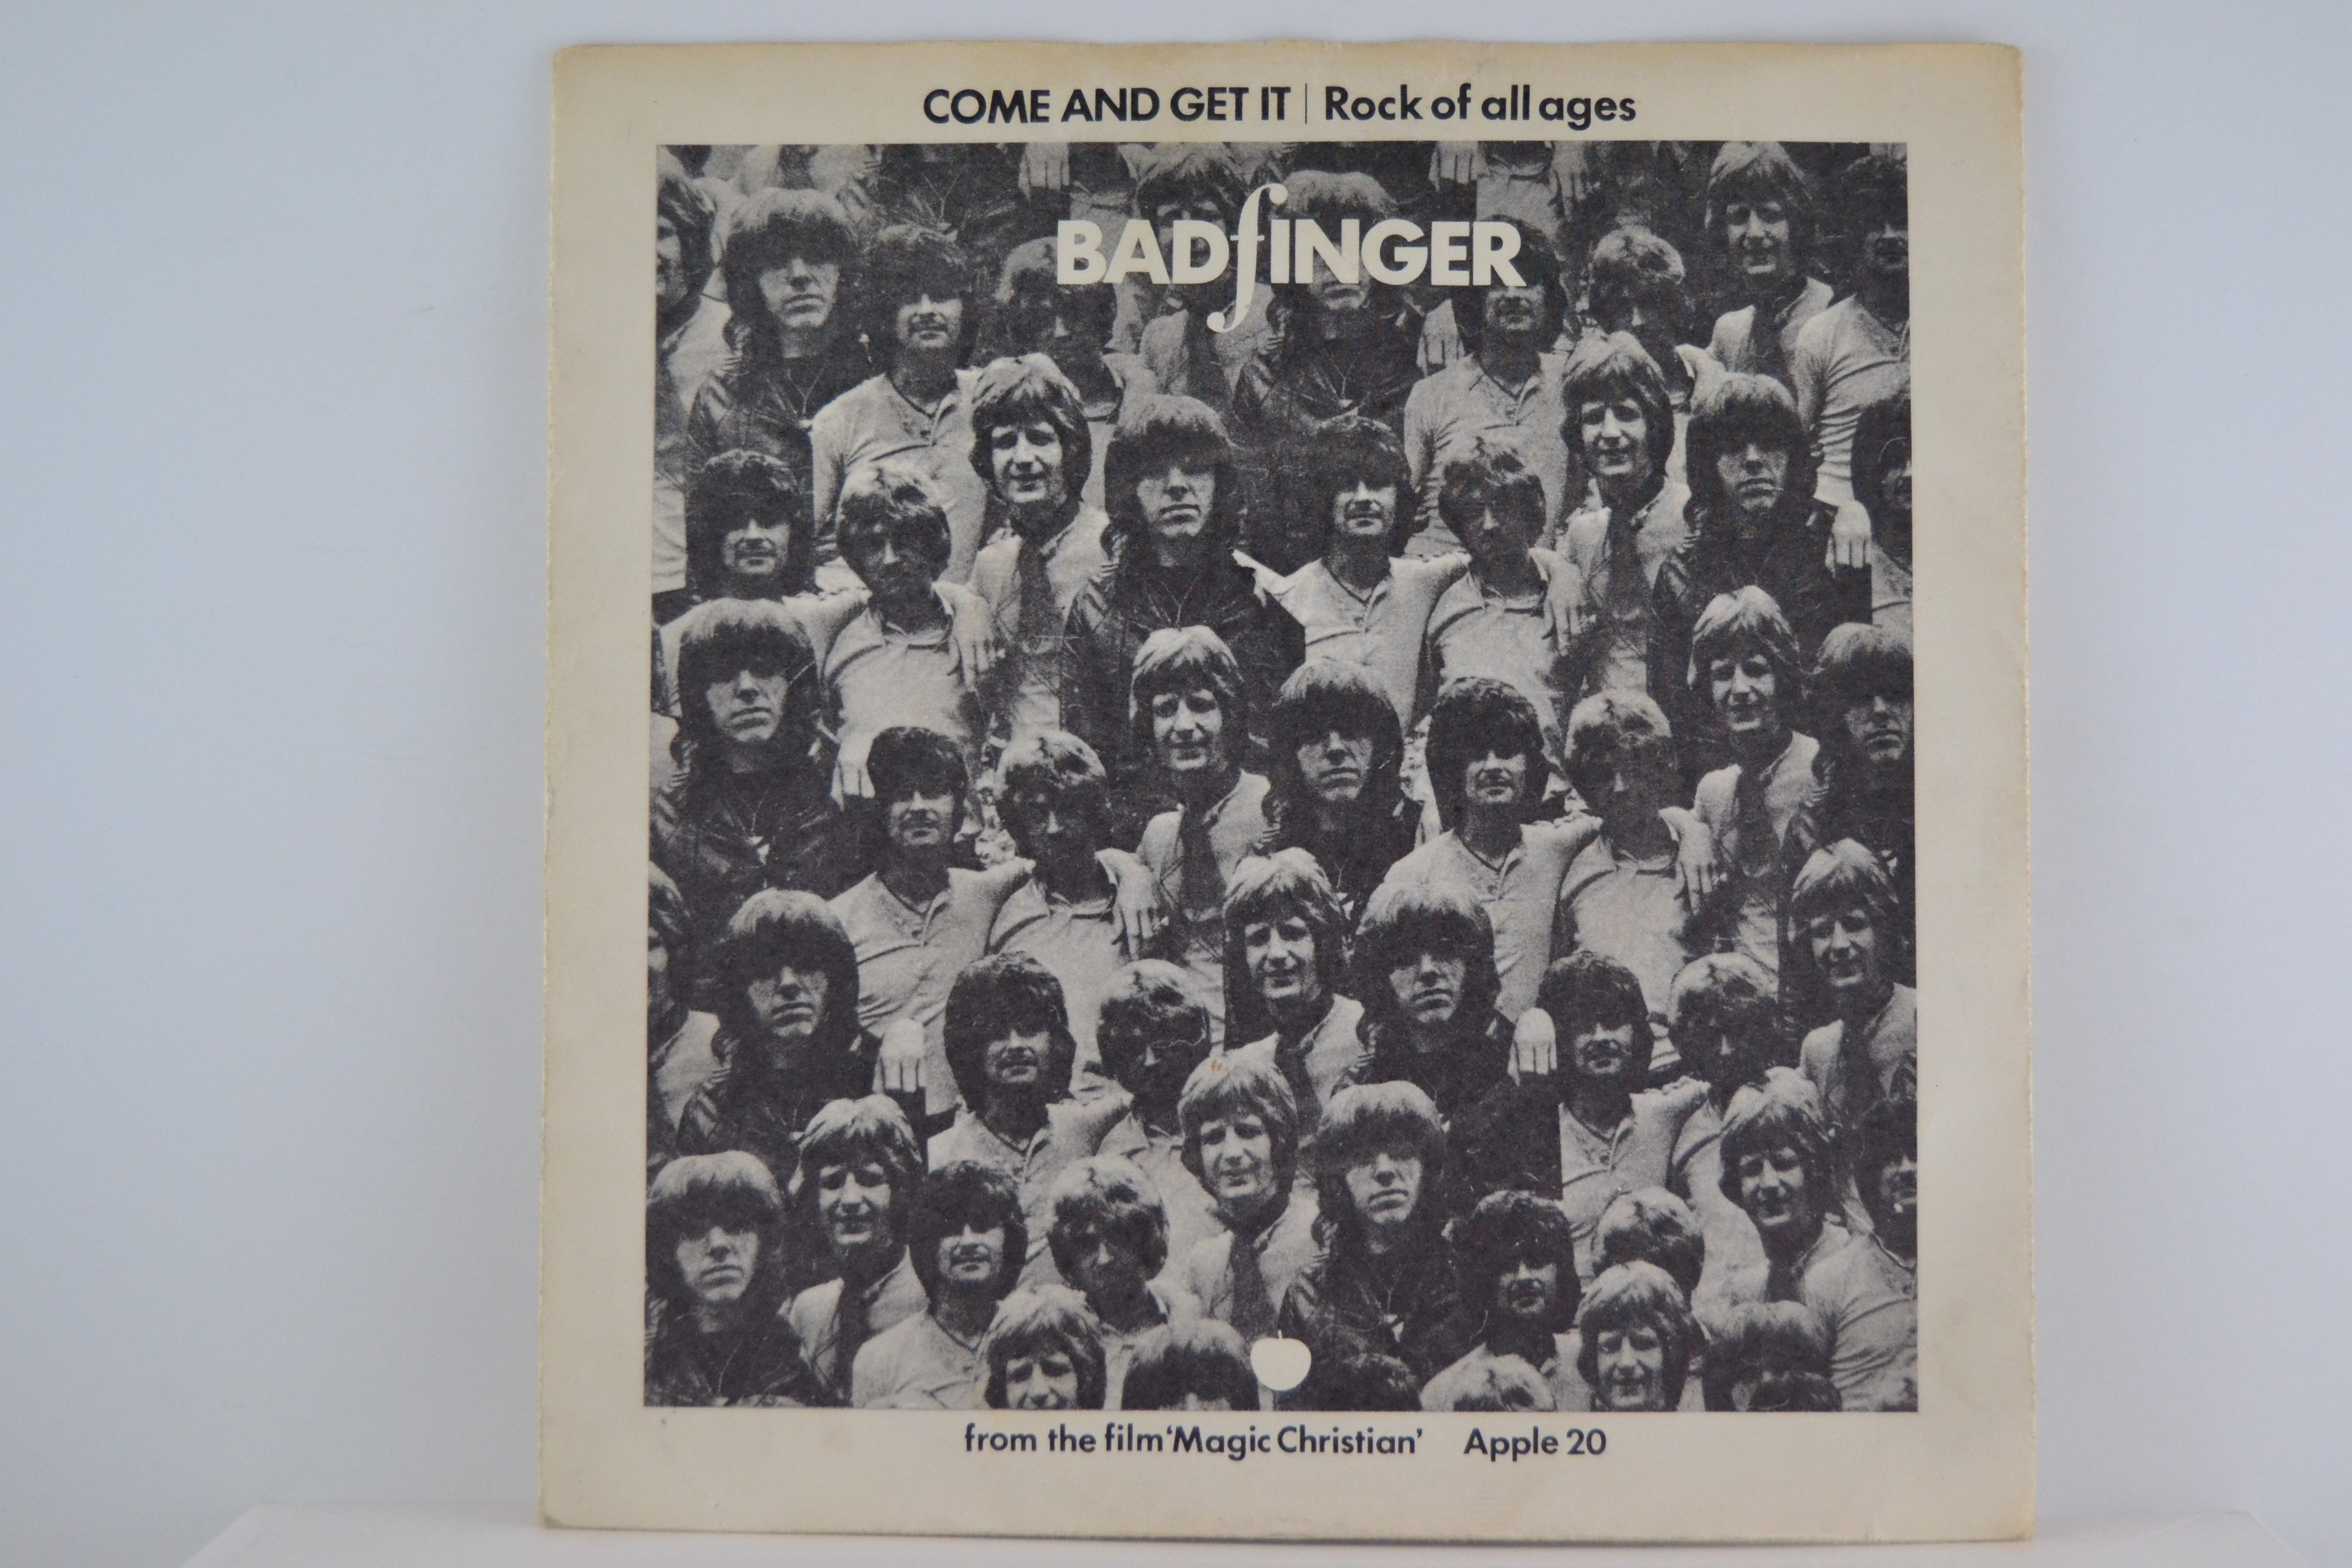 BADFINGER : Come and get it / Rock of all ages